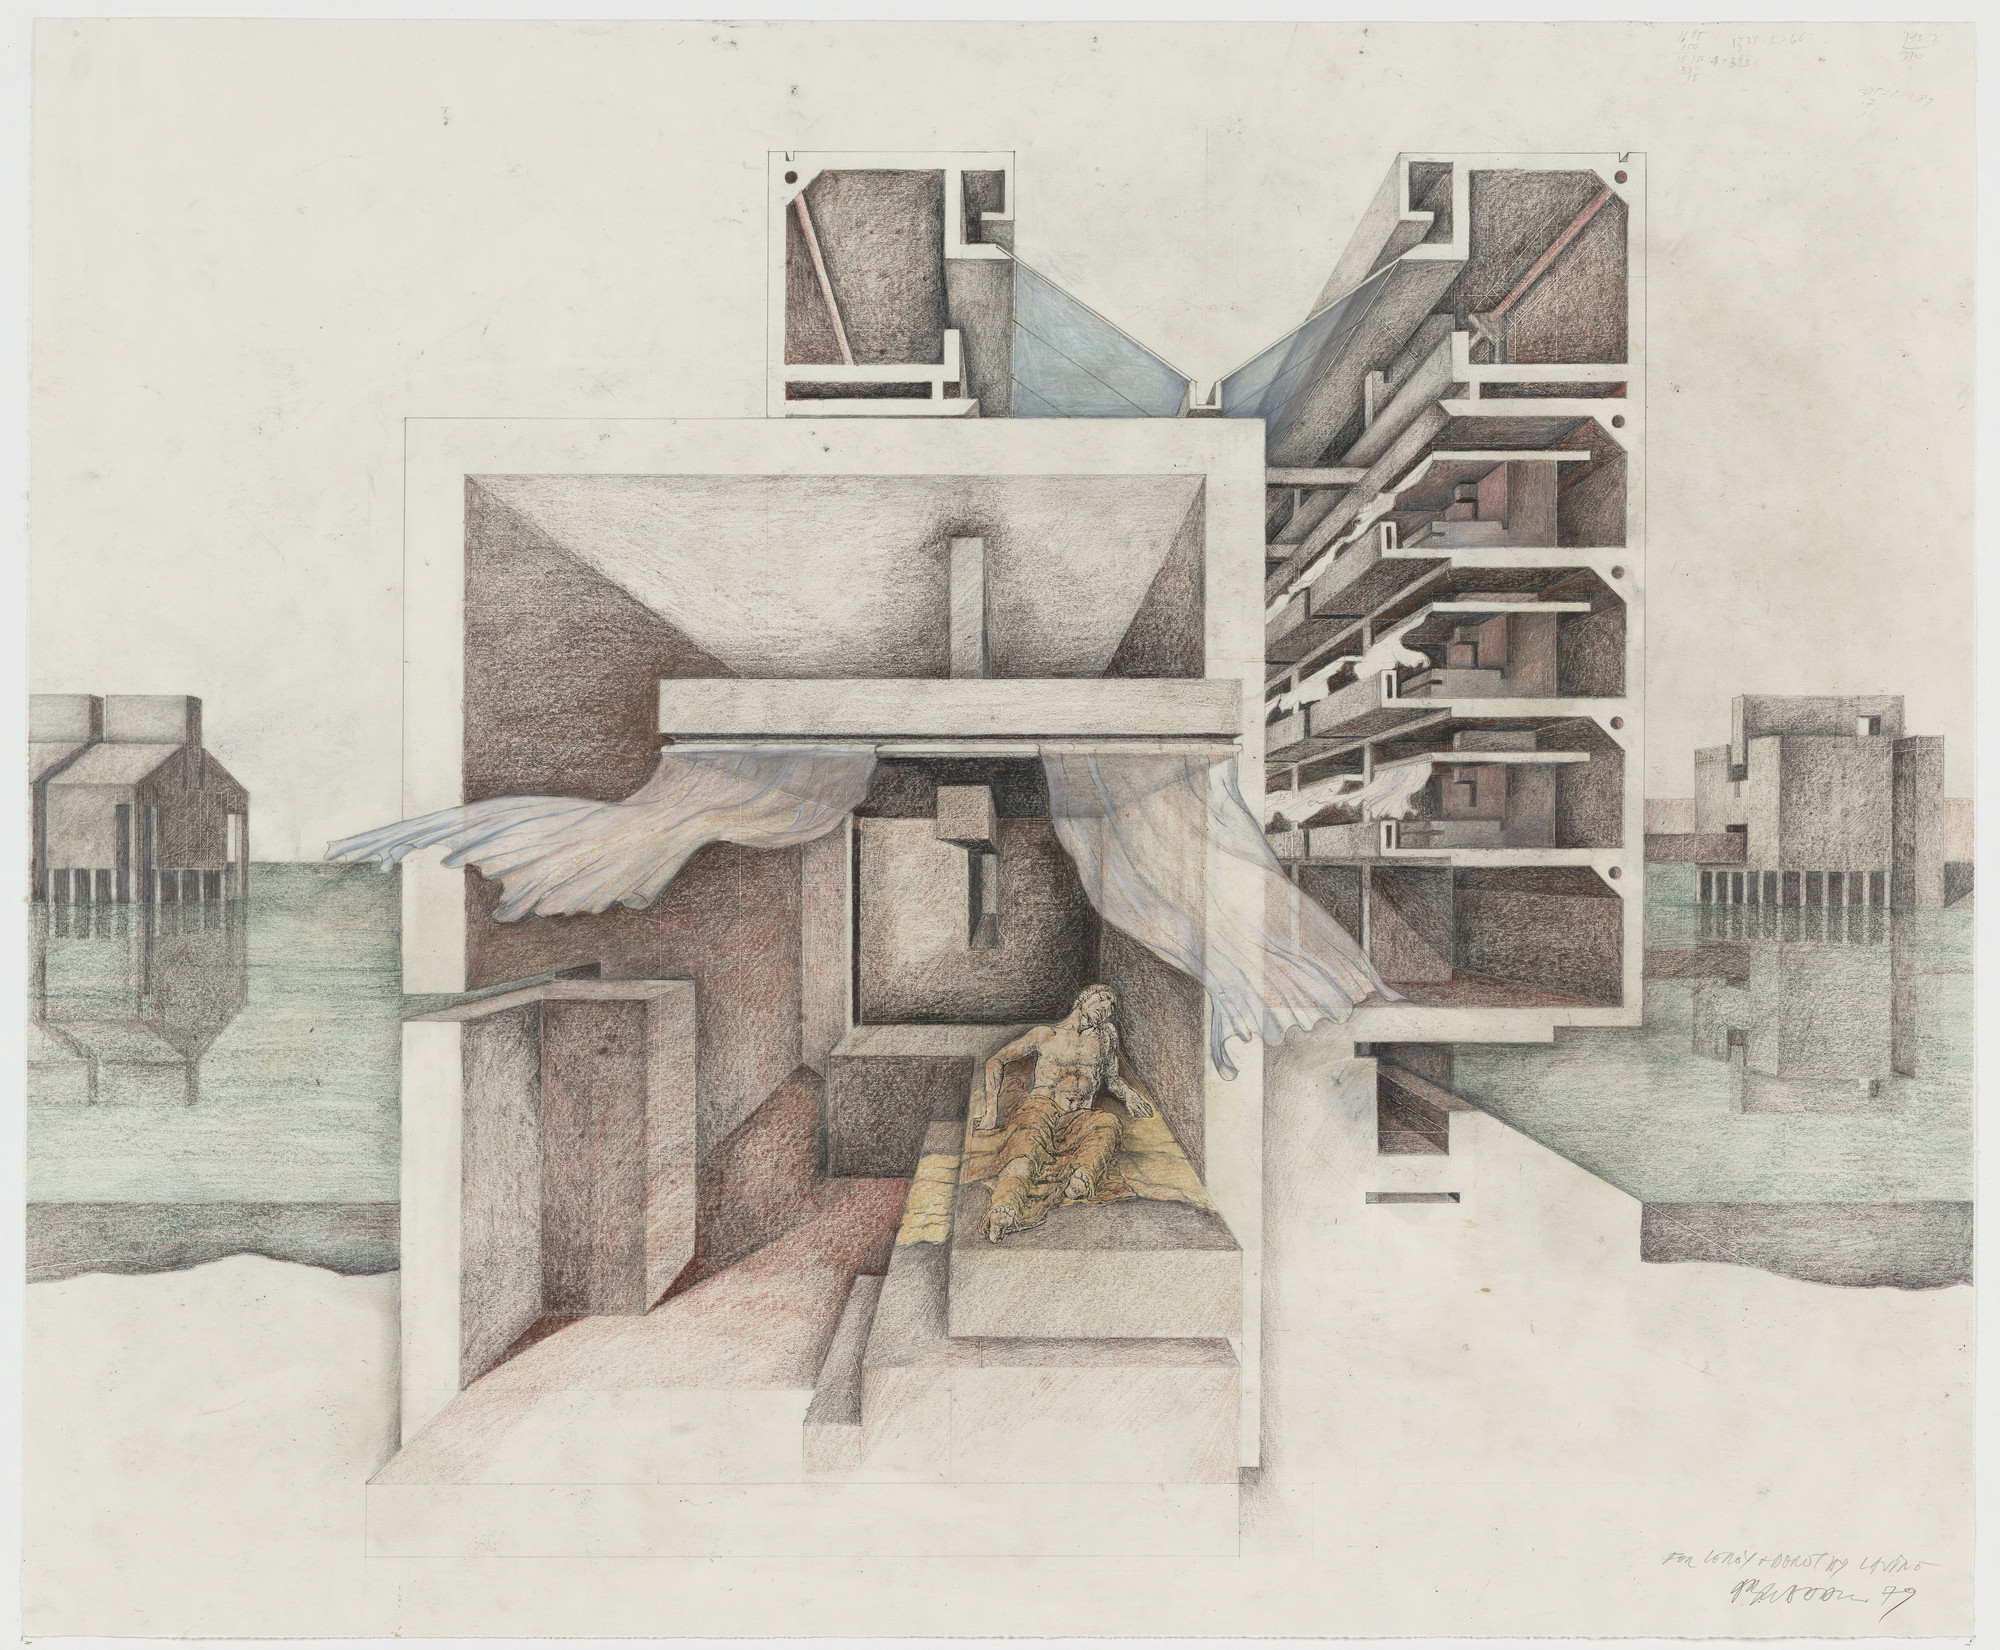 Raimund Abraham. Hospital: House of Hope, Houses of Birth, Houses of No Return, project, Venice, Italy, Sectional perspective. 1979